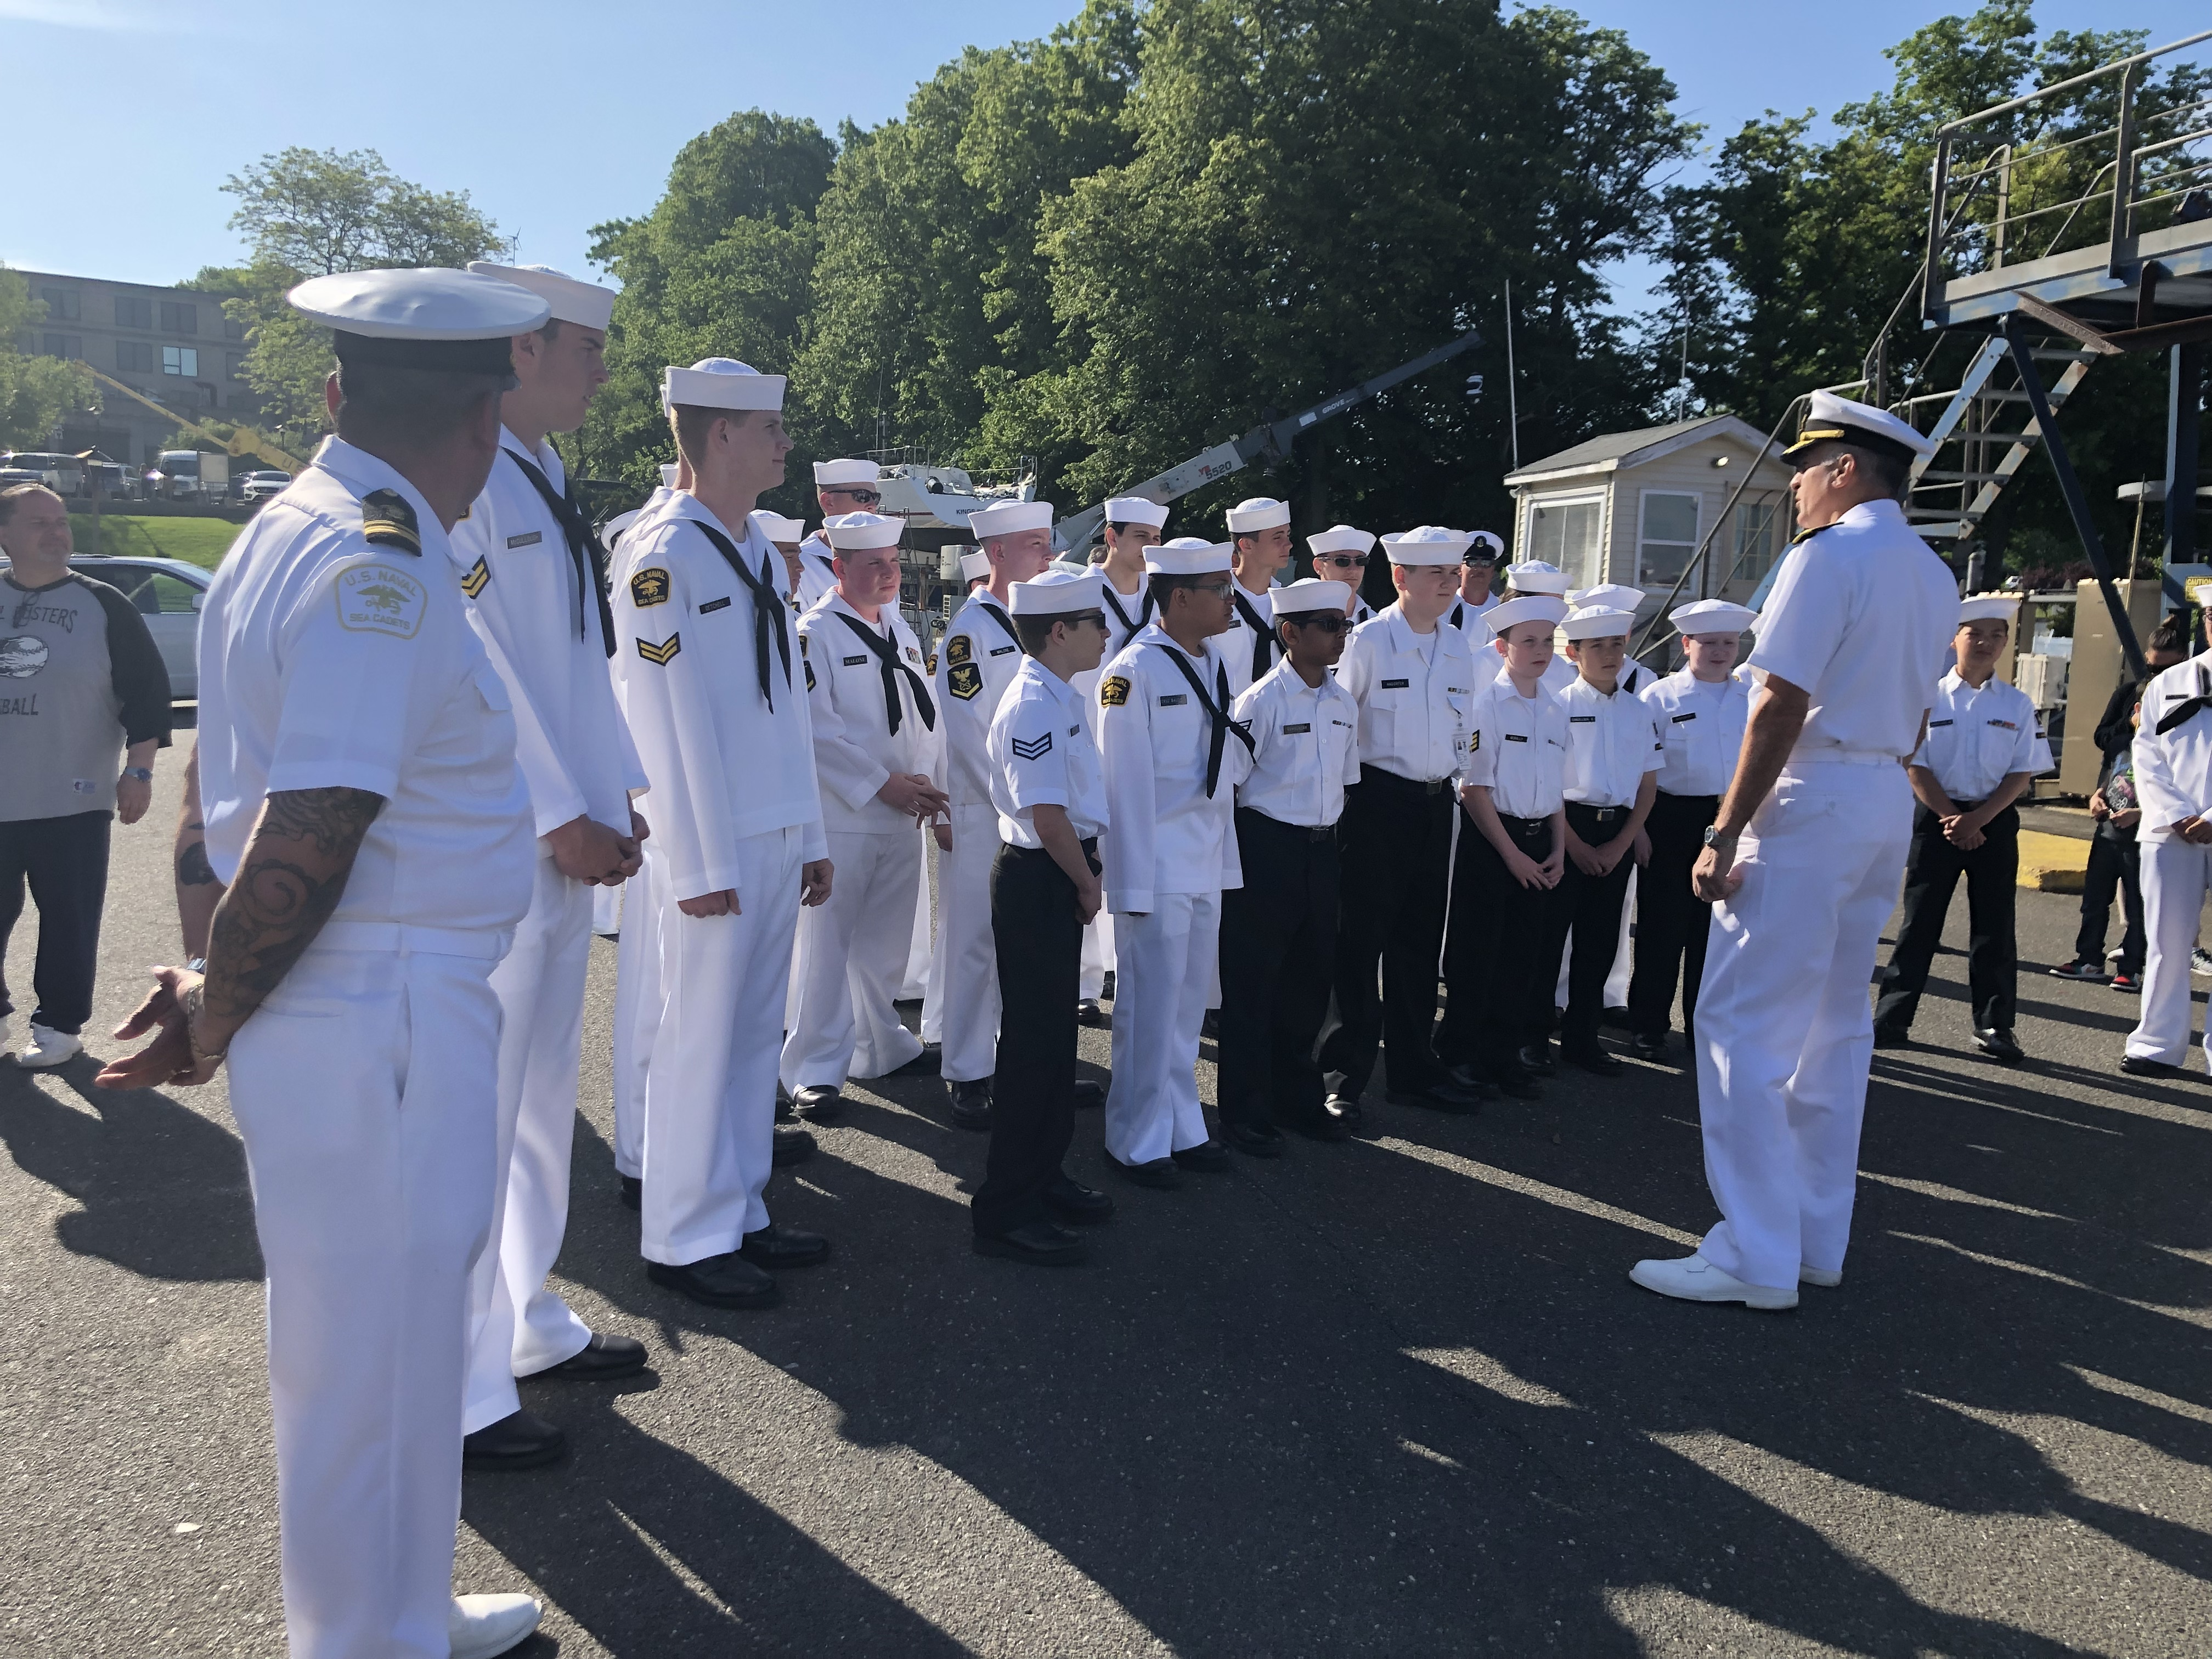 The NYPD Explorers learn about Navy careers